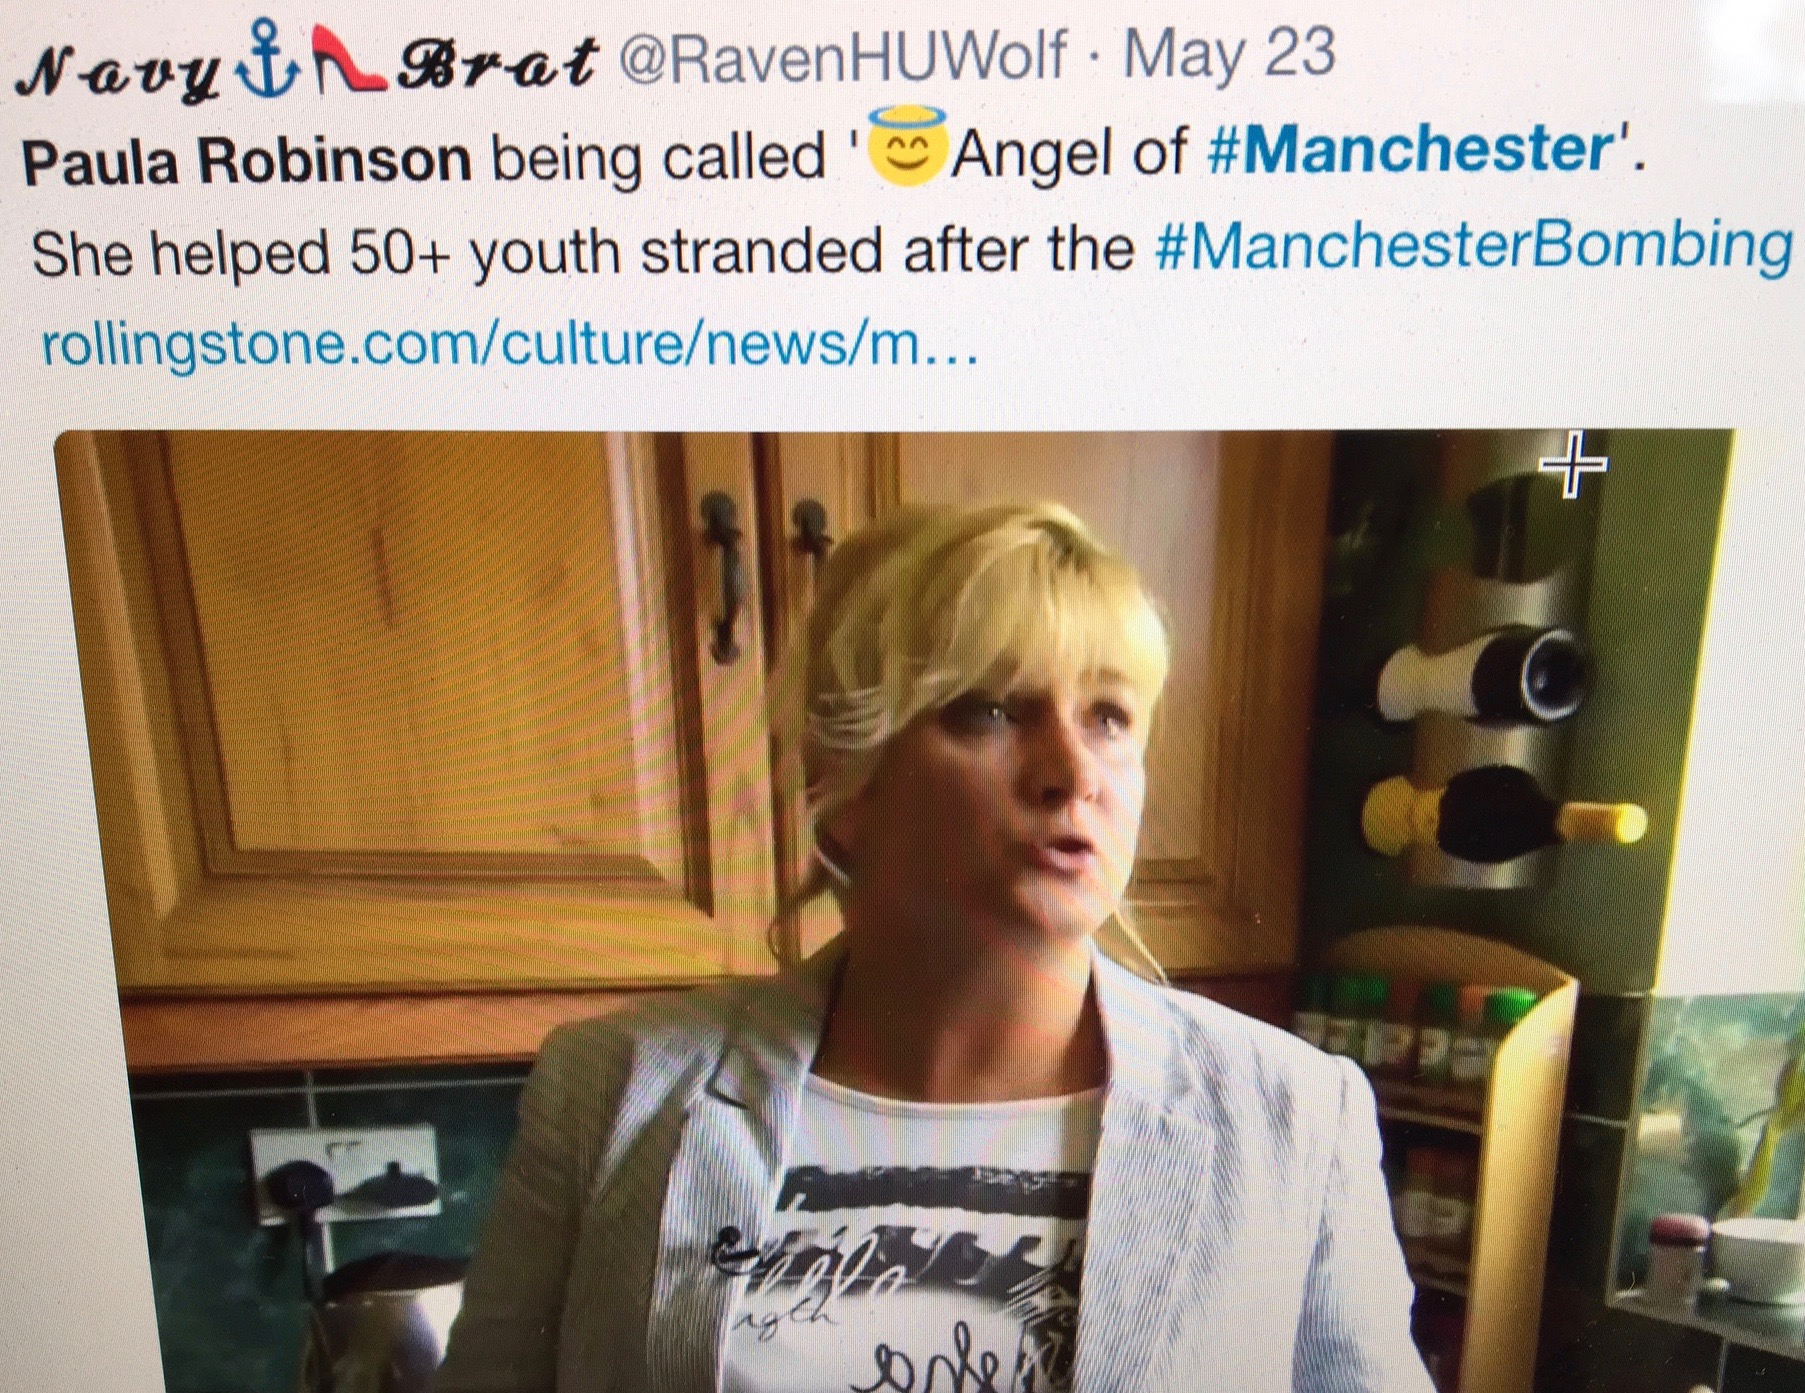 Paula Robinson was one of the many people who's instant response was kindness. Moments after the blast she gathered around 50 scared teenagers and took them to Manchester Piccadilly's Premier Inn to keep them safe. She used social media to alert their frantic parents.